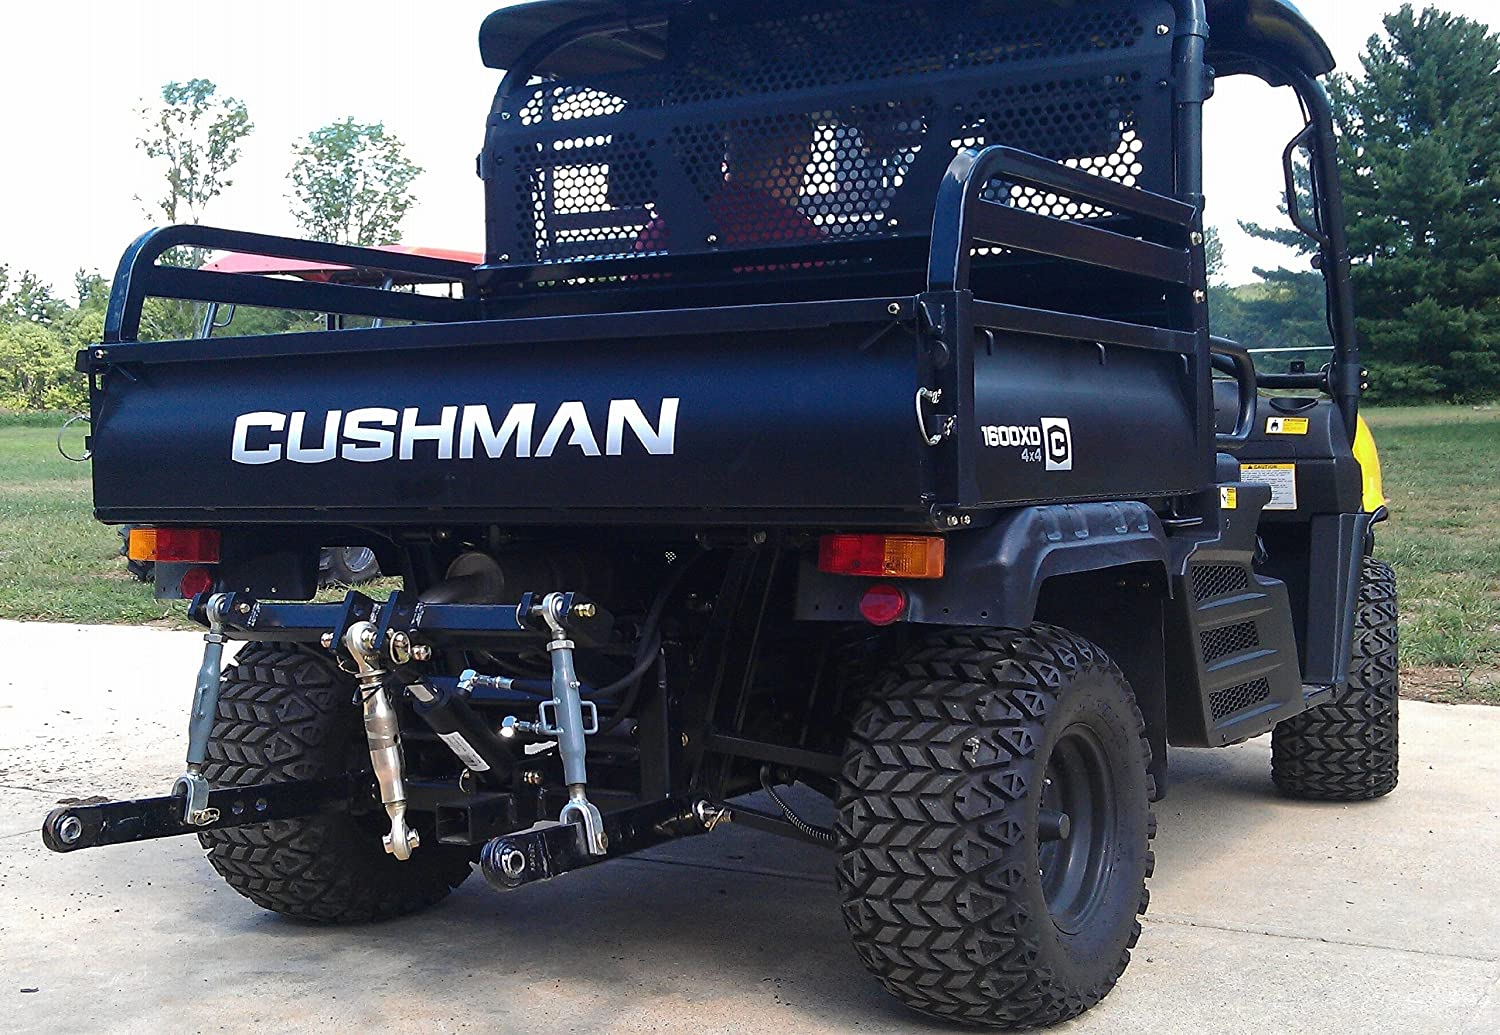 Farmboy Sport 3-point Hitch for Cushman 1600 XD and Bad Boy Buggies XD